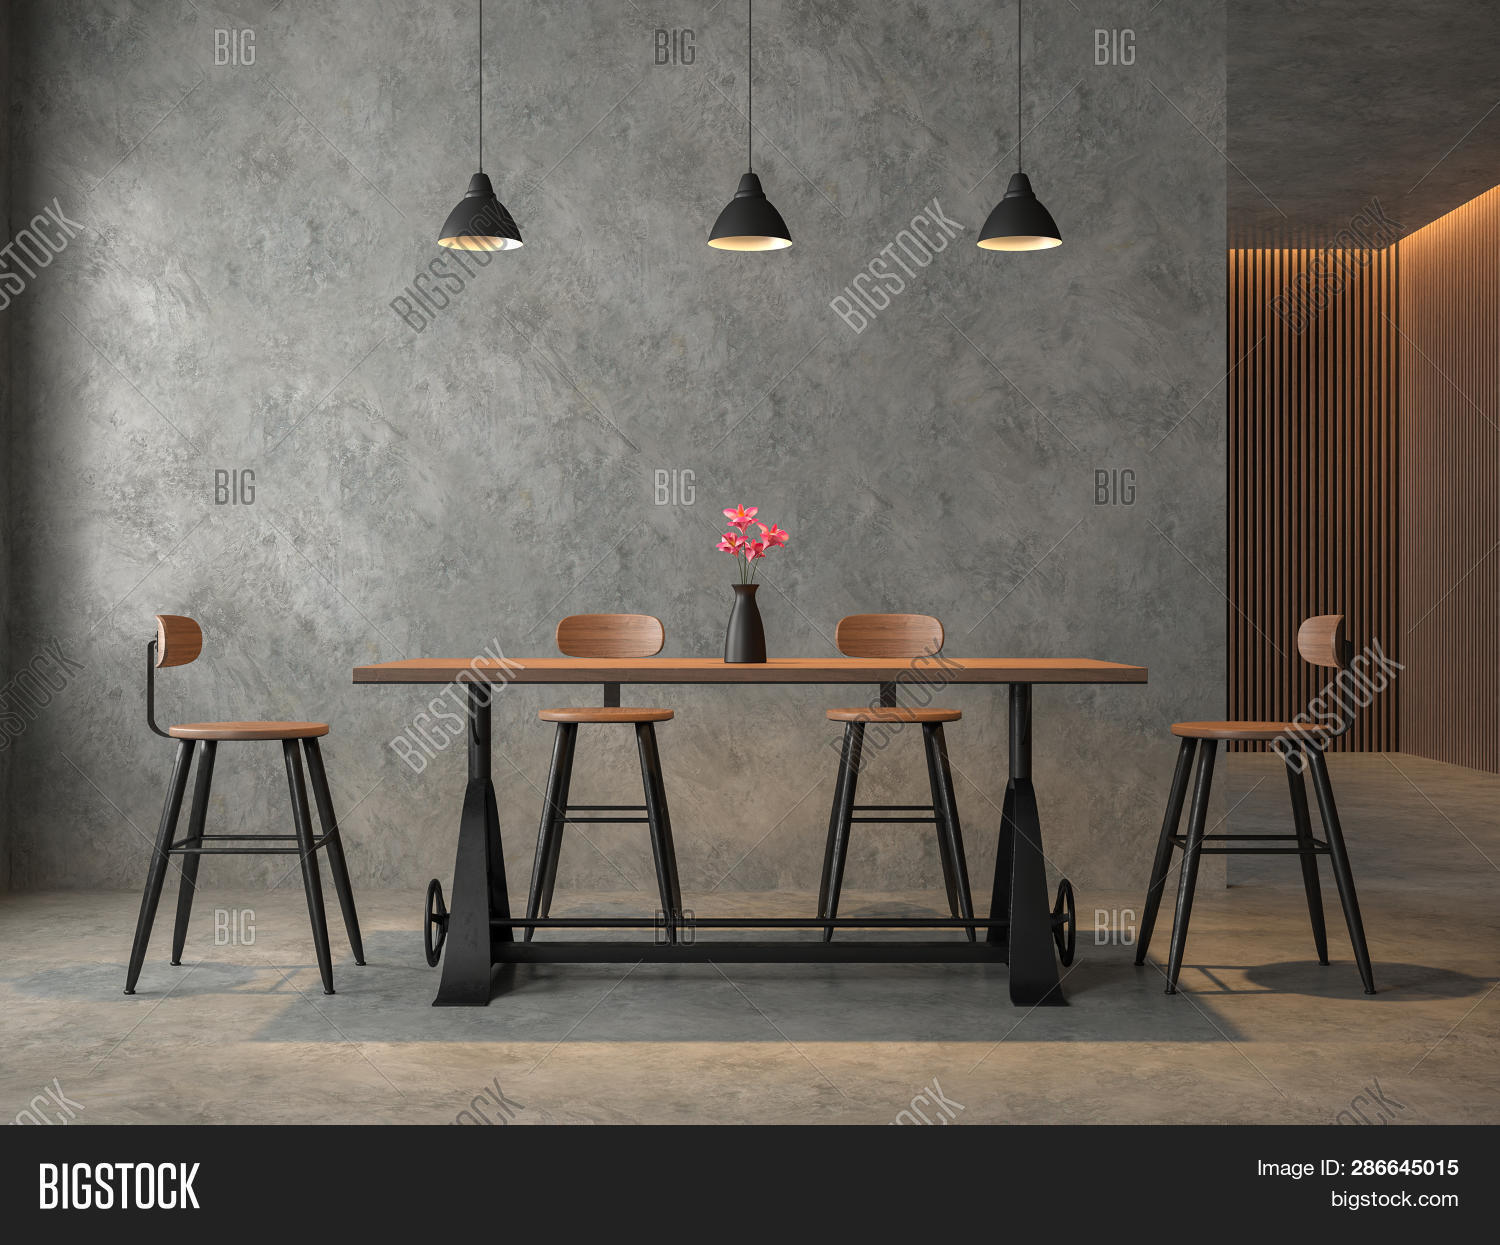 Loft Style Dining Room Image Photo Free Trial Bigstock